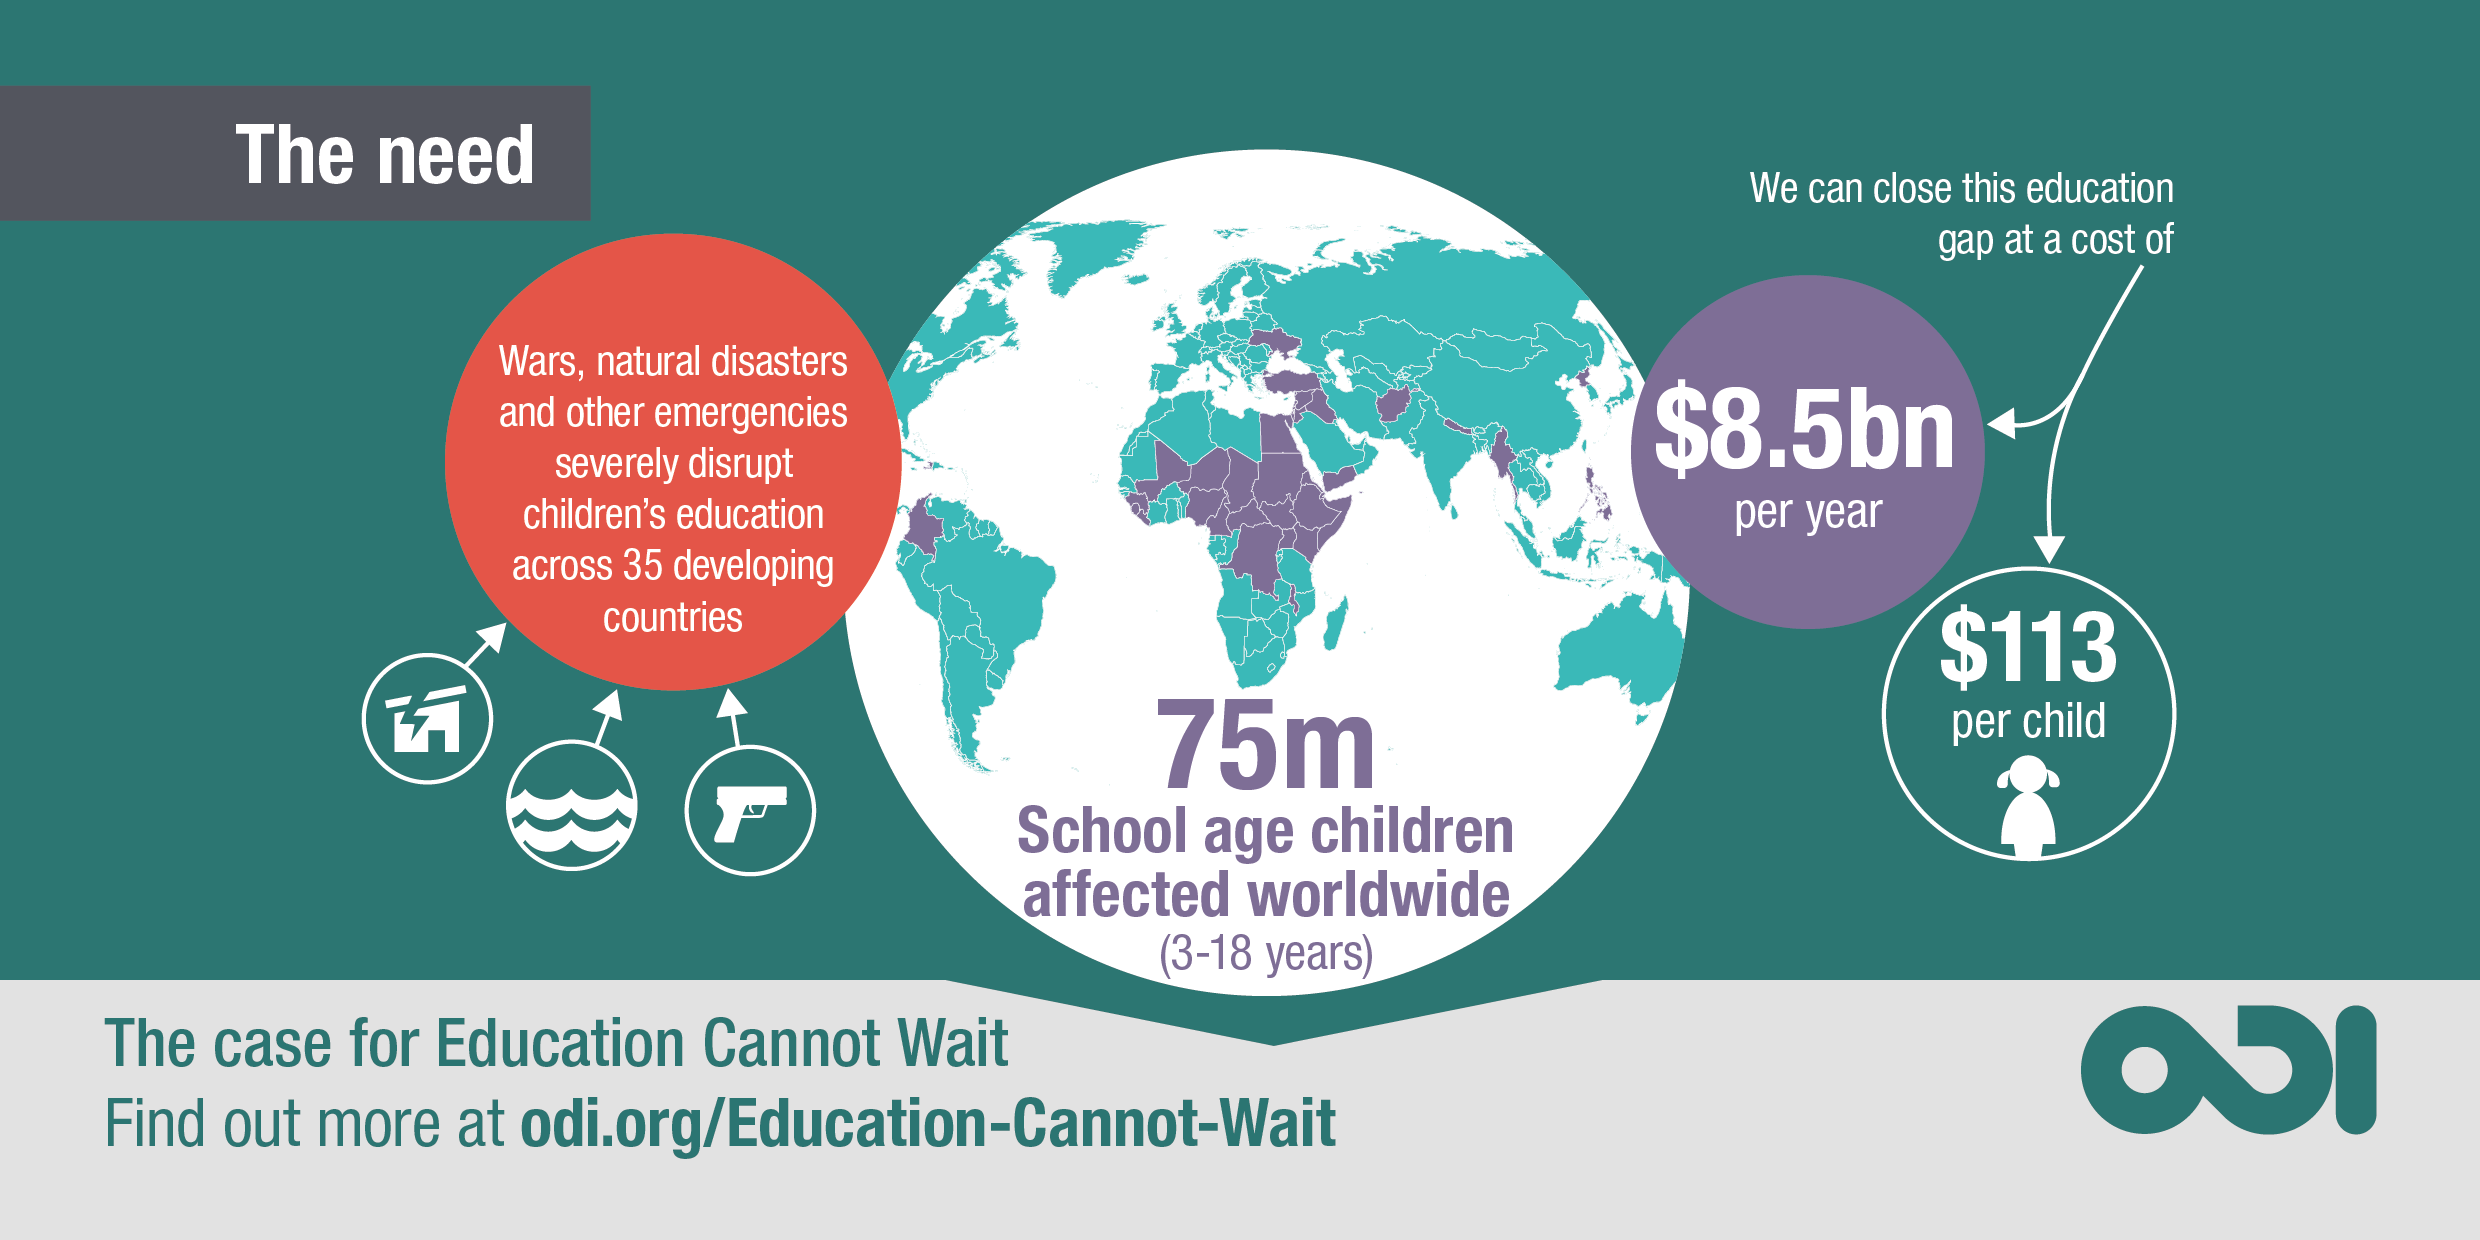 Education Cannot Wait Fund announced ahead of World Humanitarian Summit.